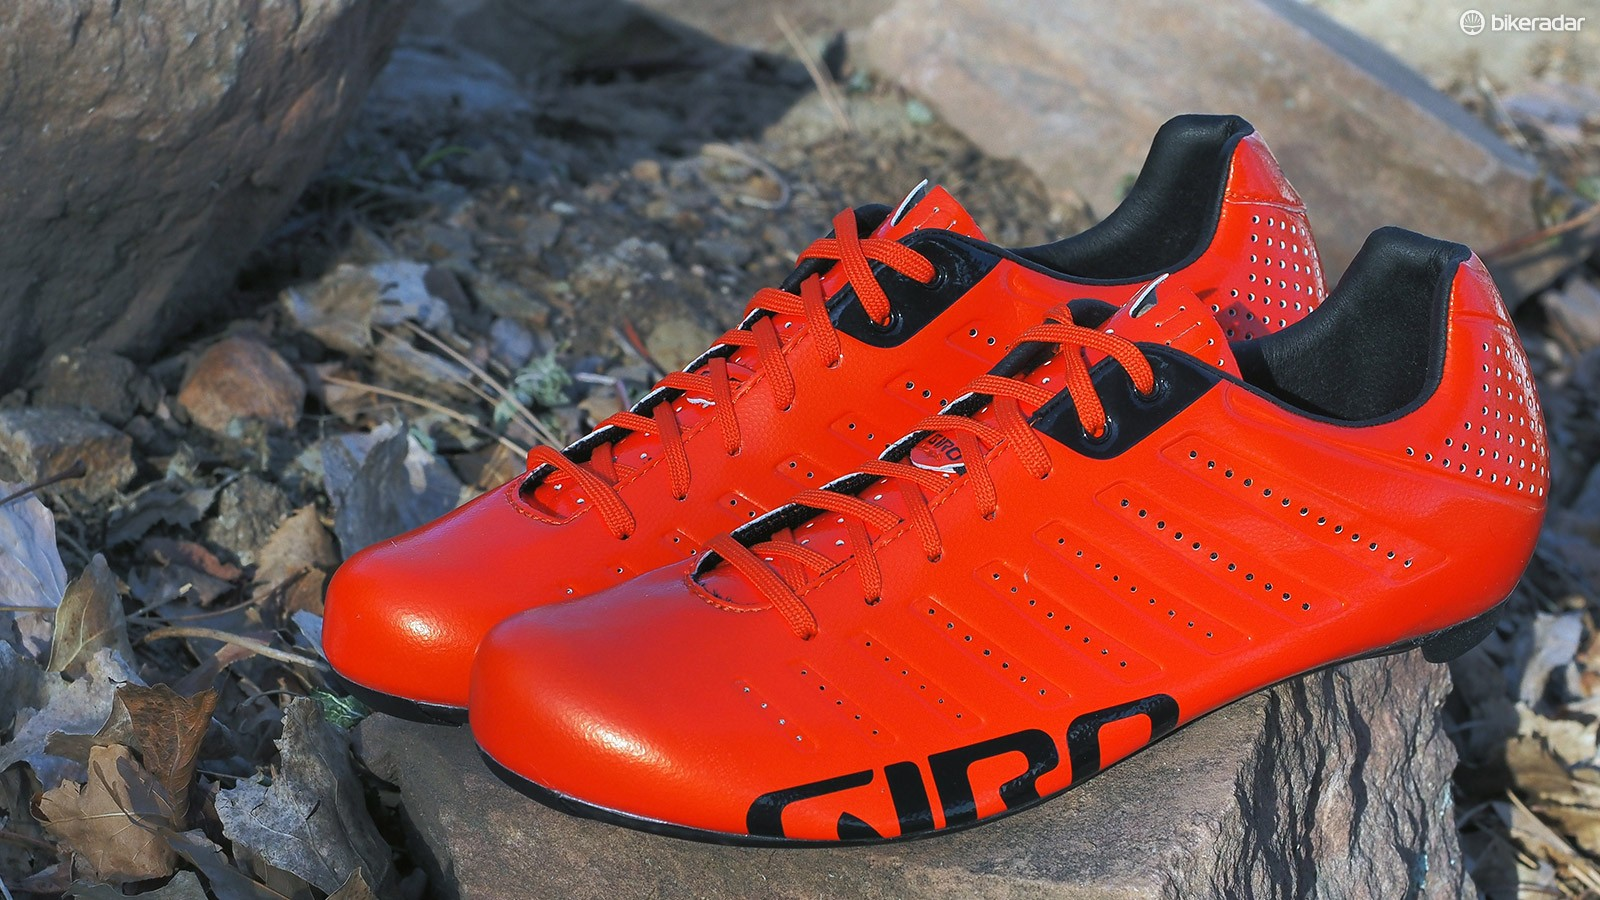 The Giro Empire SLX shoes aren't just light; they're also freakishly comfortable, impressively stiff, and well ventilated - not to mention quite pretty